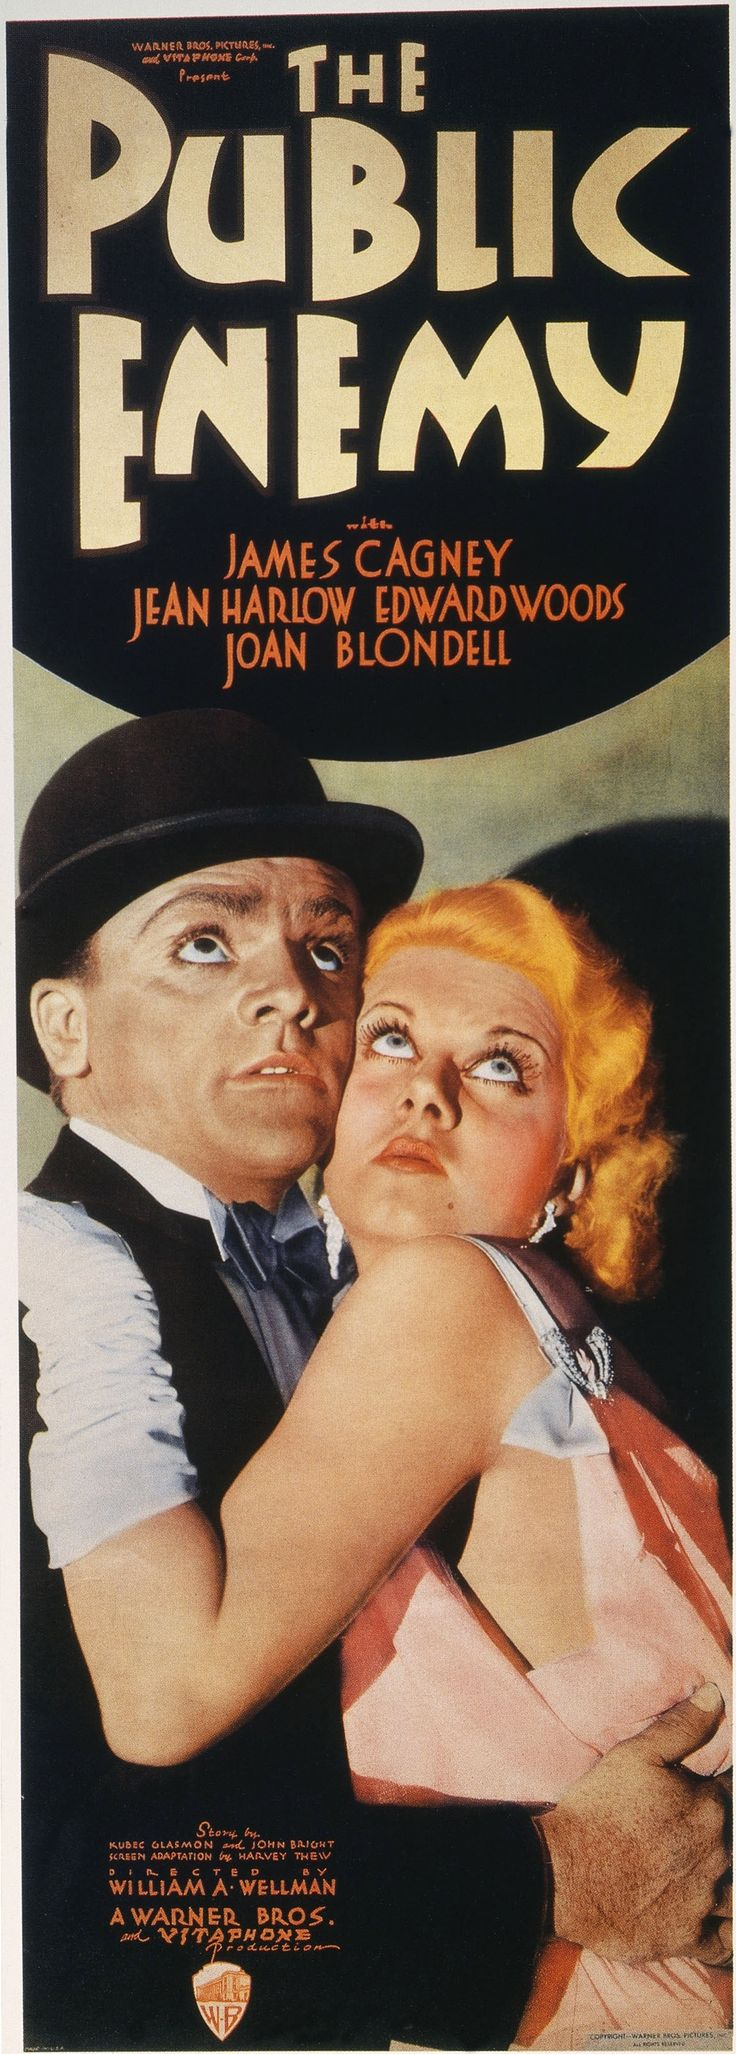 """""""The Public Enemy"""". Gangster classic with James Cagney and Jean Harlow."""